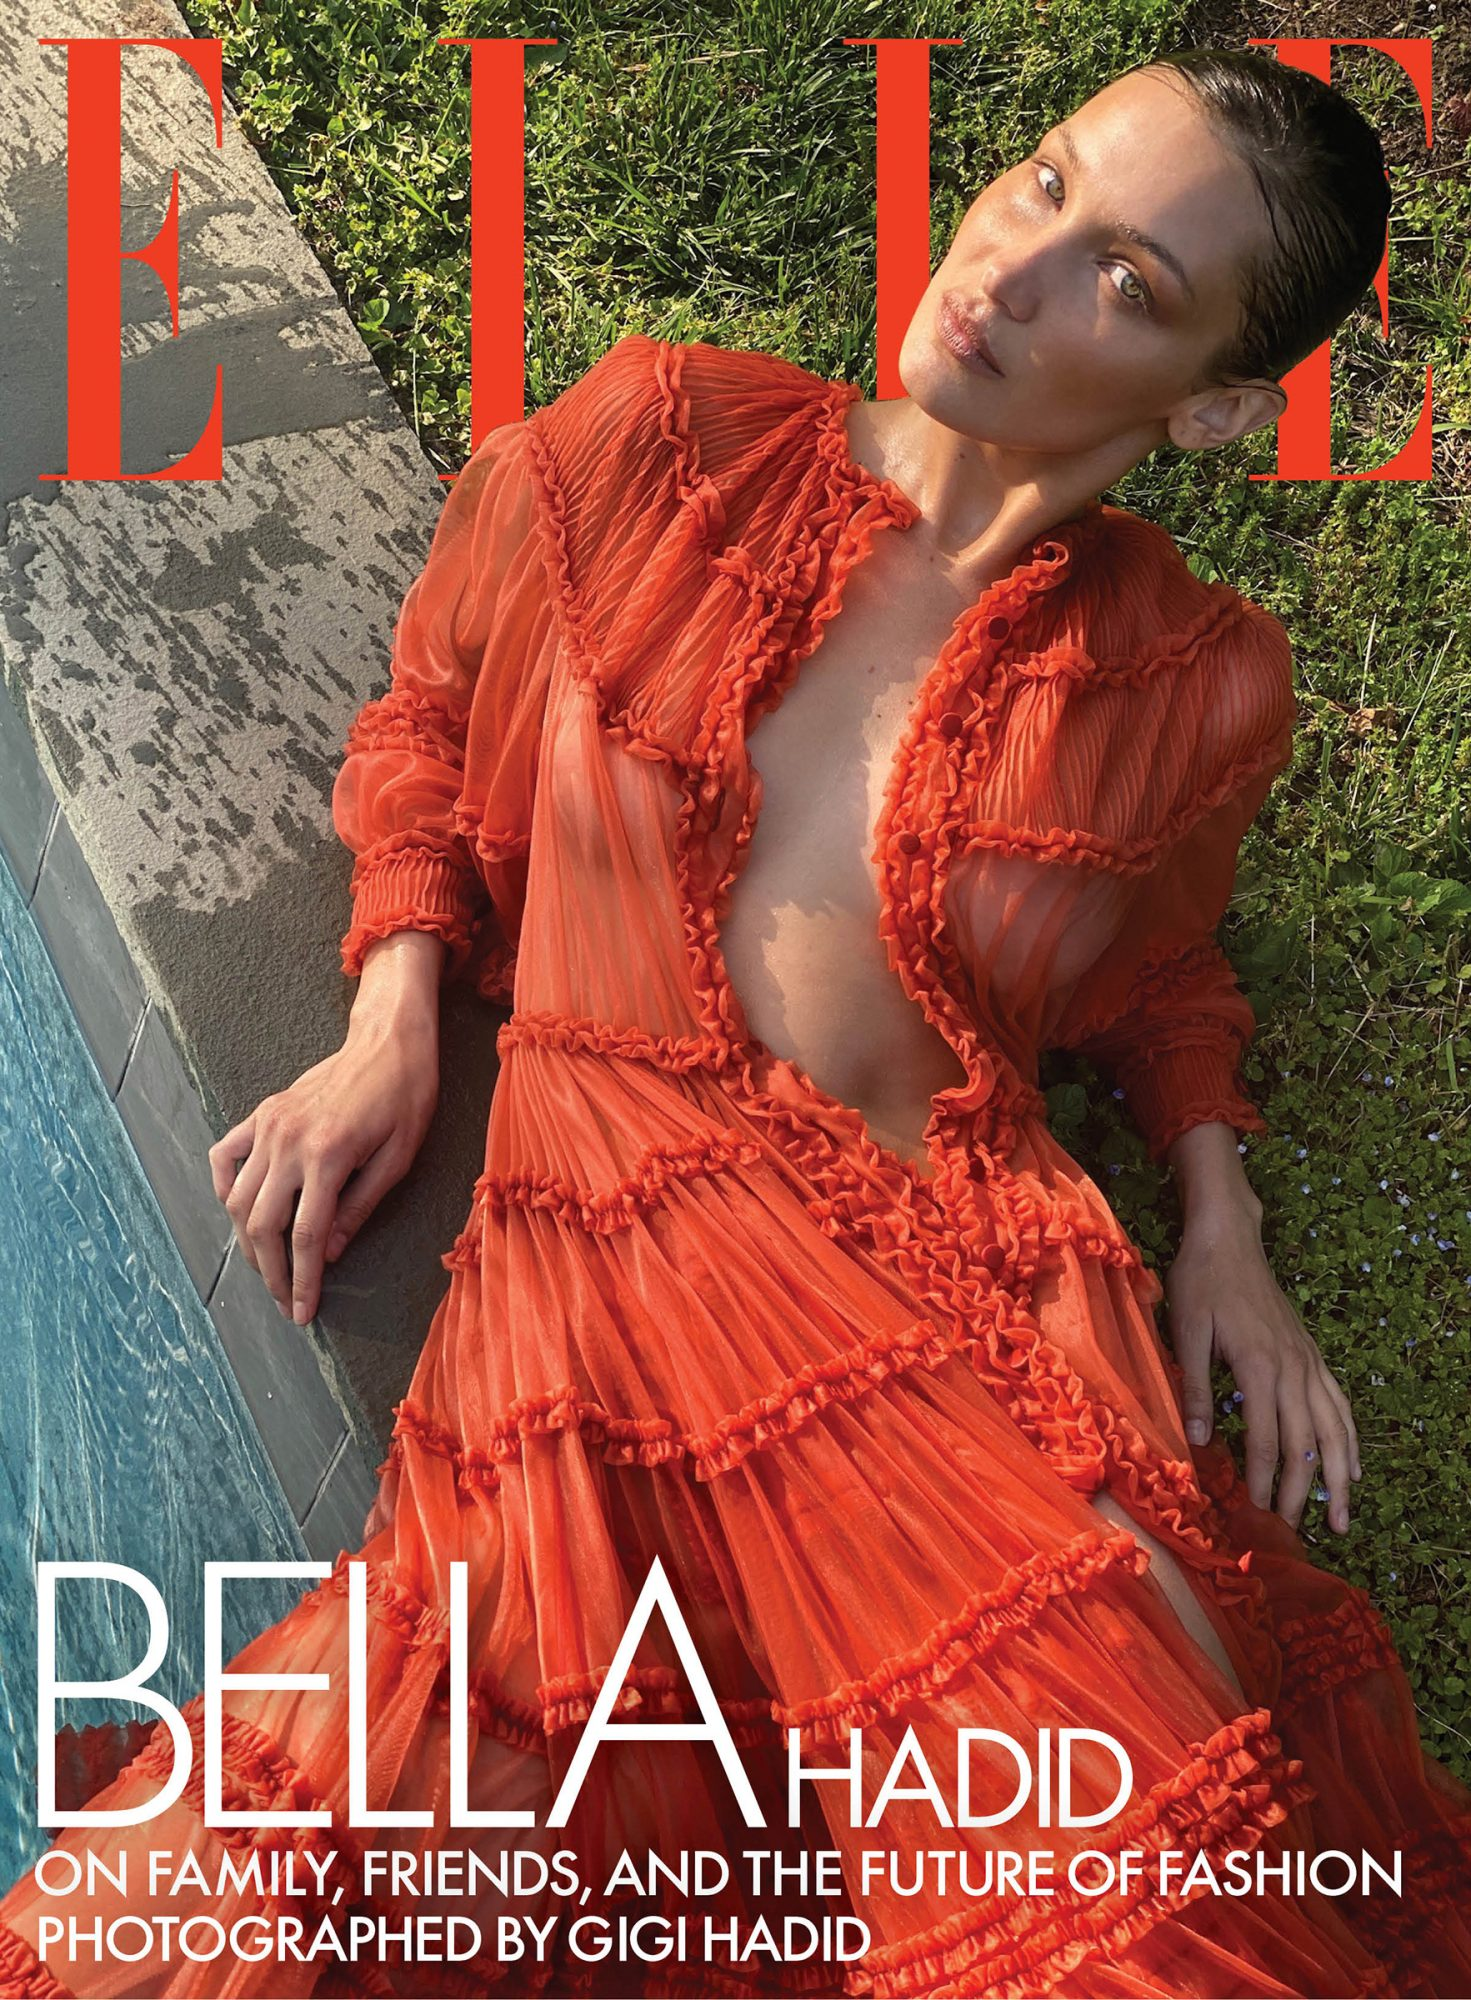 Bella Hadid on the cover of Elle